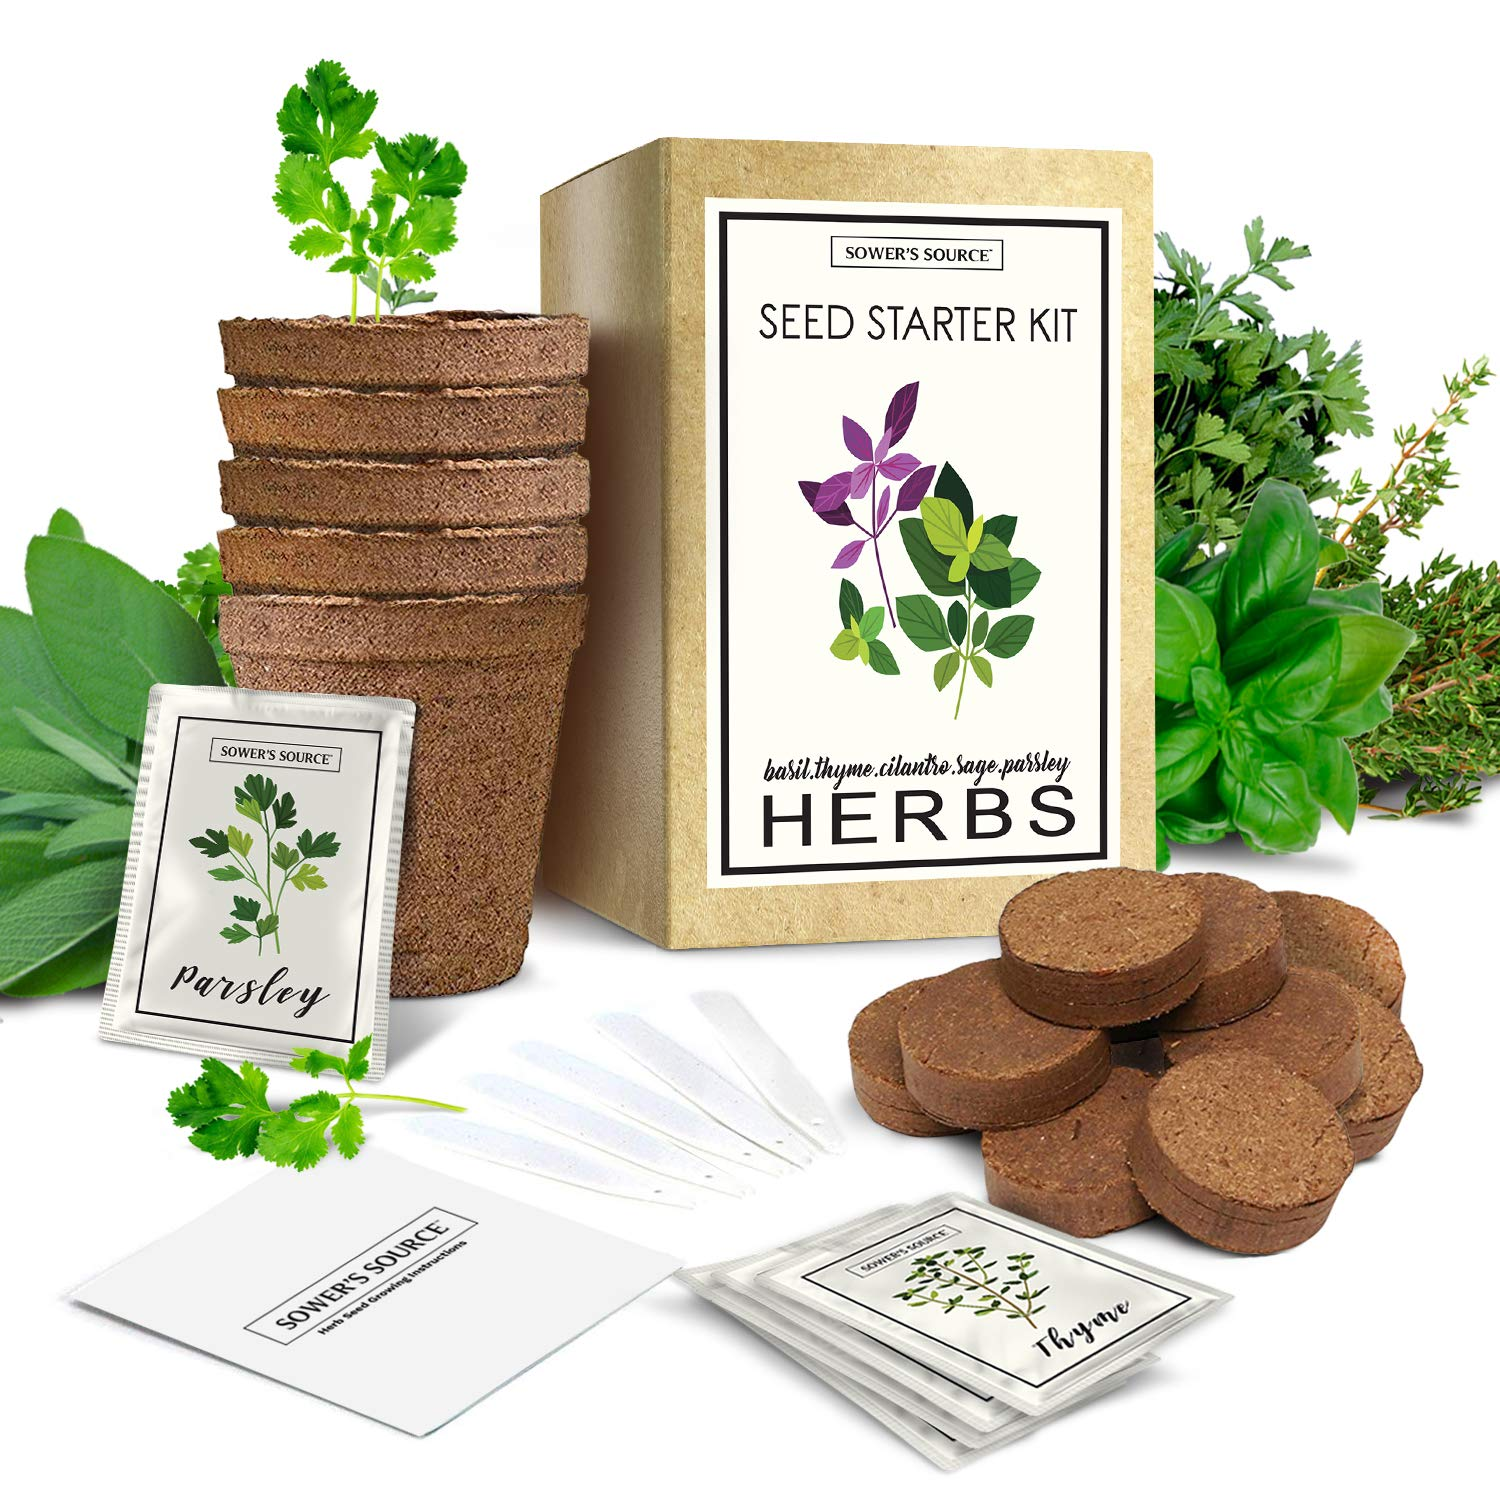 Herb Garden Starter Kit (Indoor) Natural, Organic Planting | Pots, Markers, Seed Packets, Soil Mix | Fresh Basil, Cilantro, Parsley, Sage, Thyme | Beginner Friendly by Sower's Source